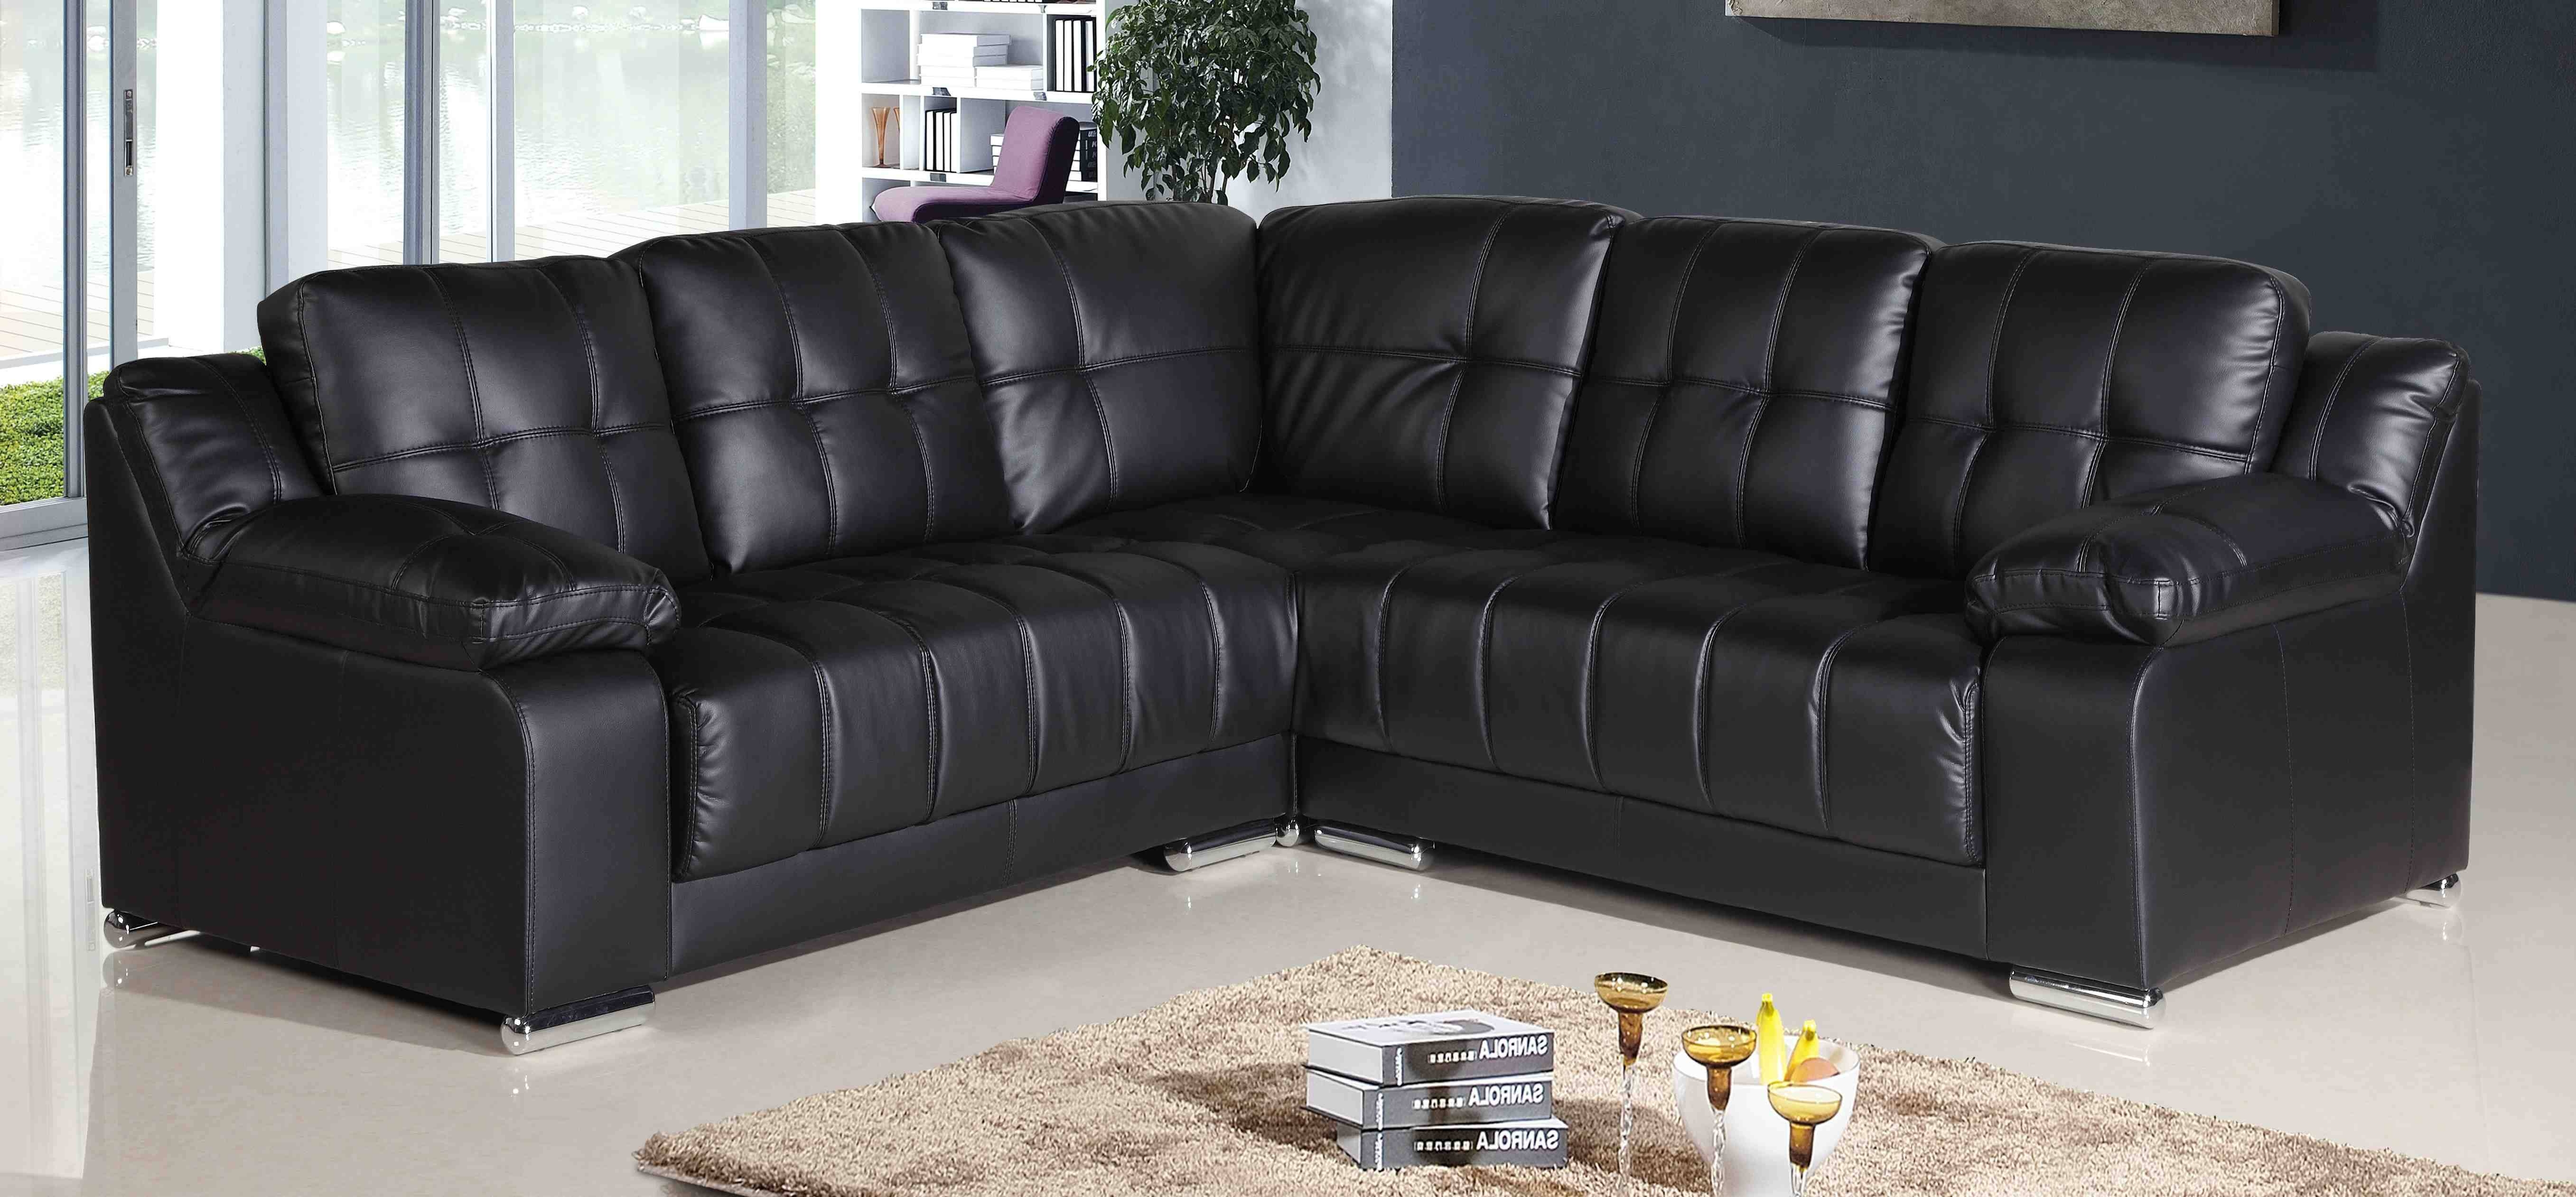 Decoration. Cheap Leather Sofas - Home Decor Ideas intended for Leather Sofas (Image 7 of 30)